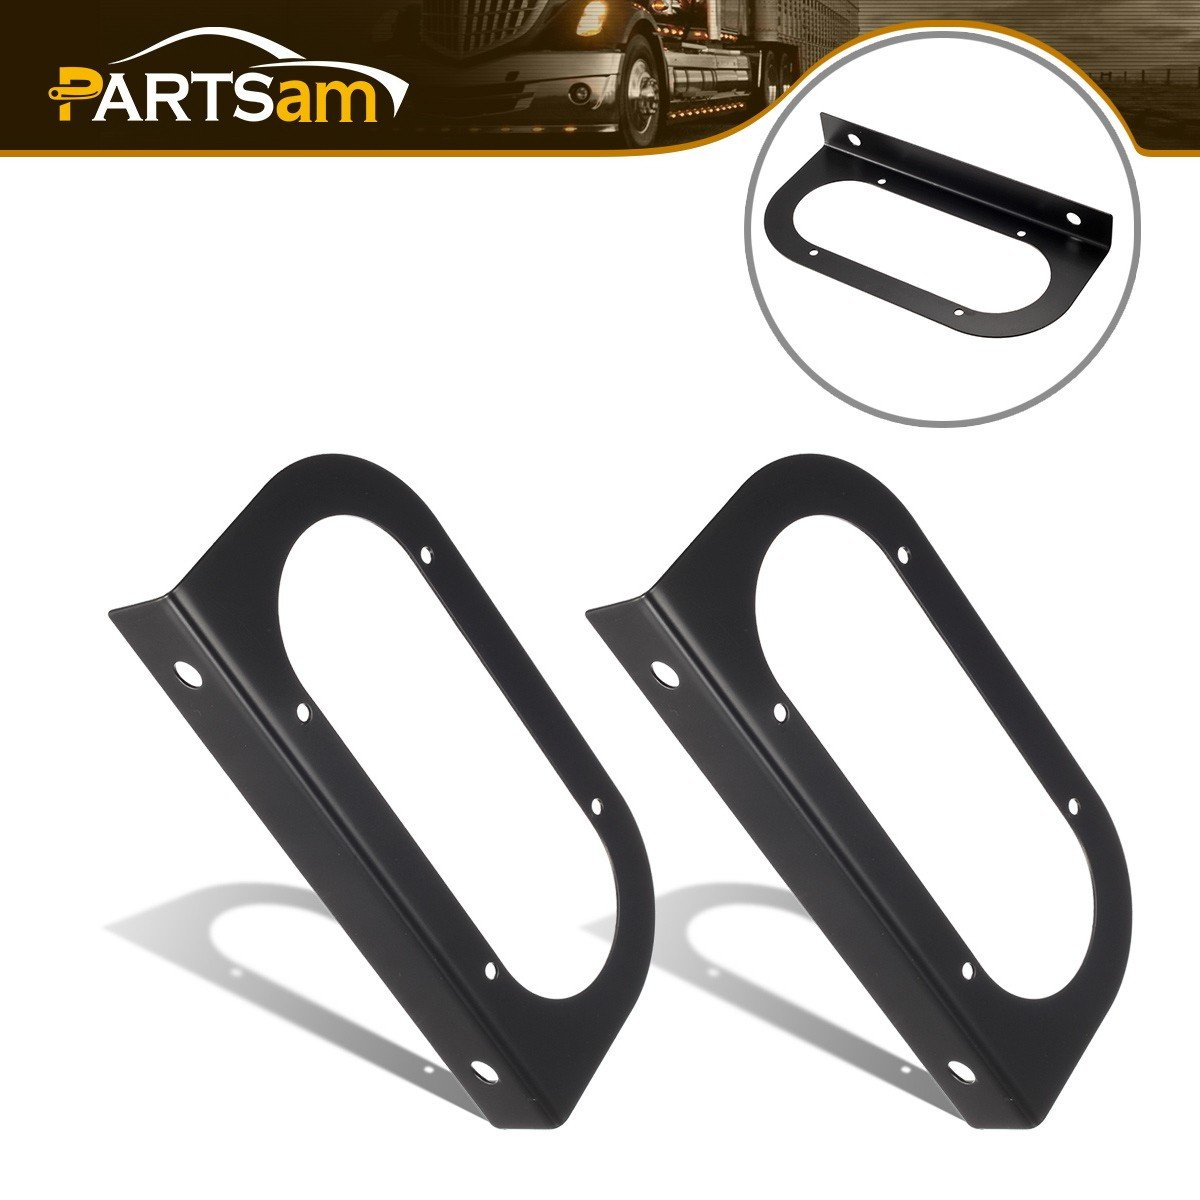 Partsam 8pc Black Mounting Brackets for 6' Oval Light, Powder Coated, Truck Trailer RV Boat